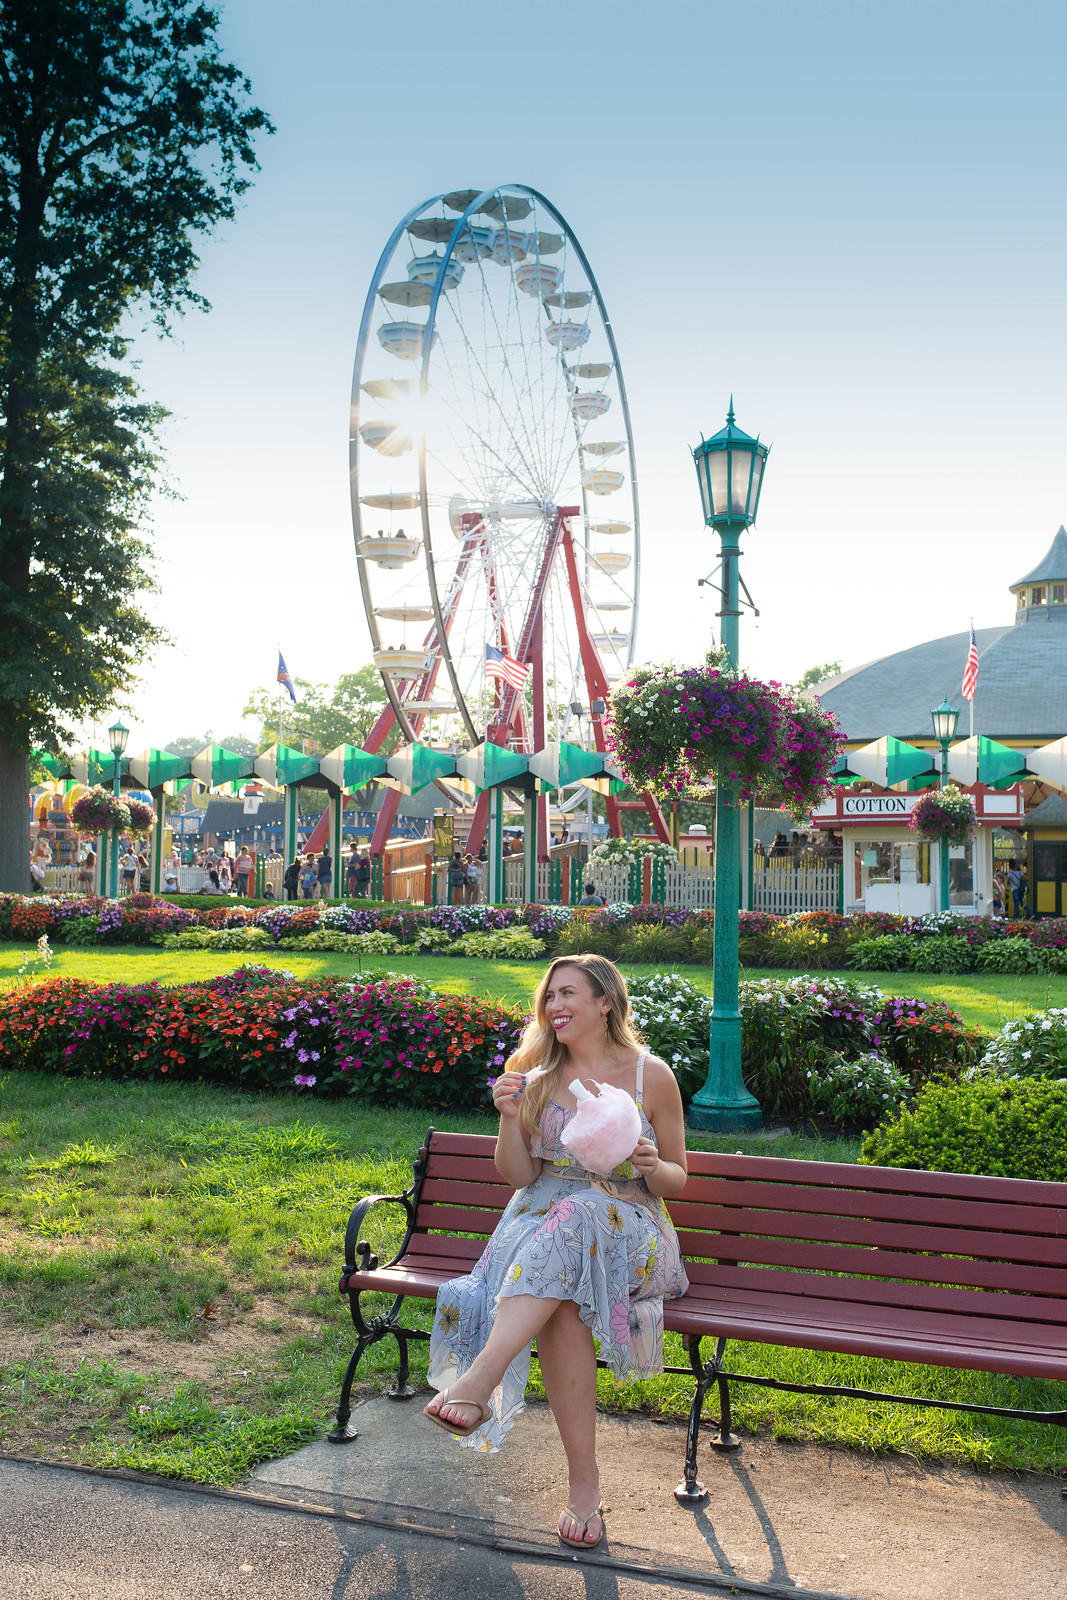 Playland Park Cotton Candy Ferris Wheel Most Instagrammable Places in Westchester County New York